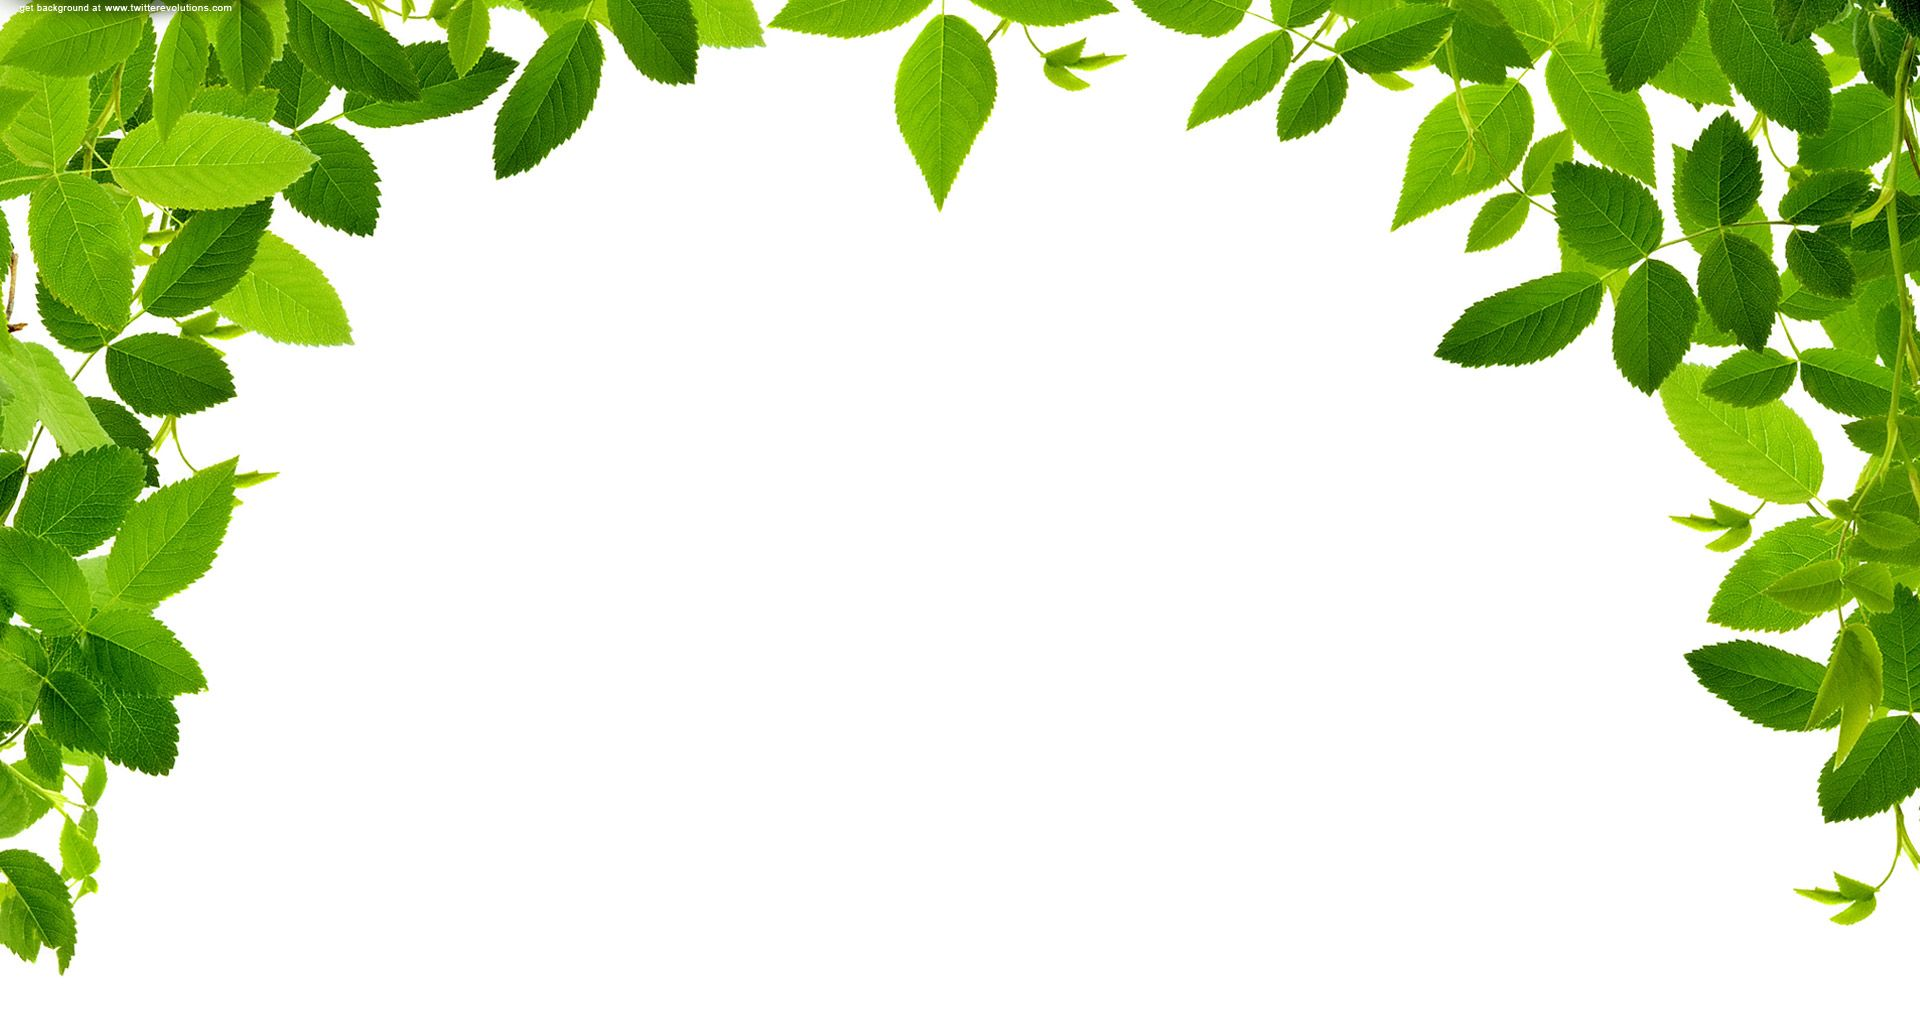 Leaves Real Free Images At Clker Com Vector Clip Art Online ...